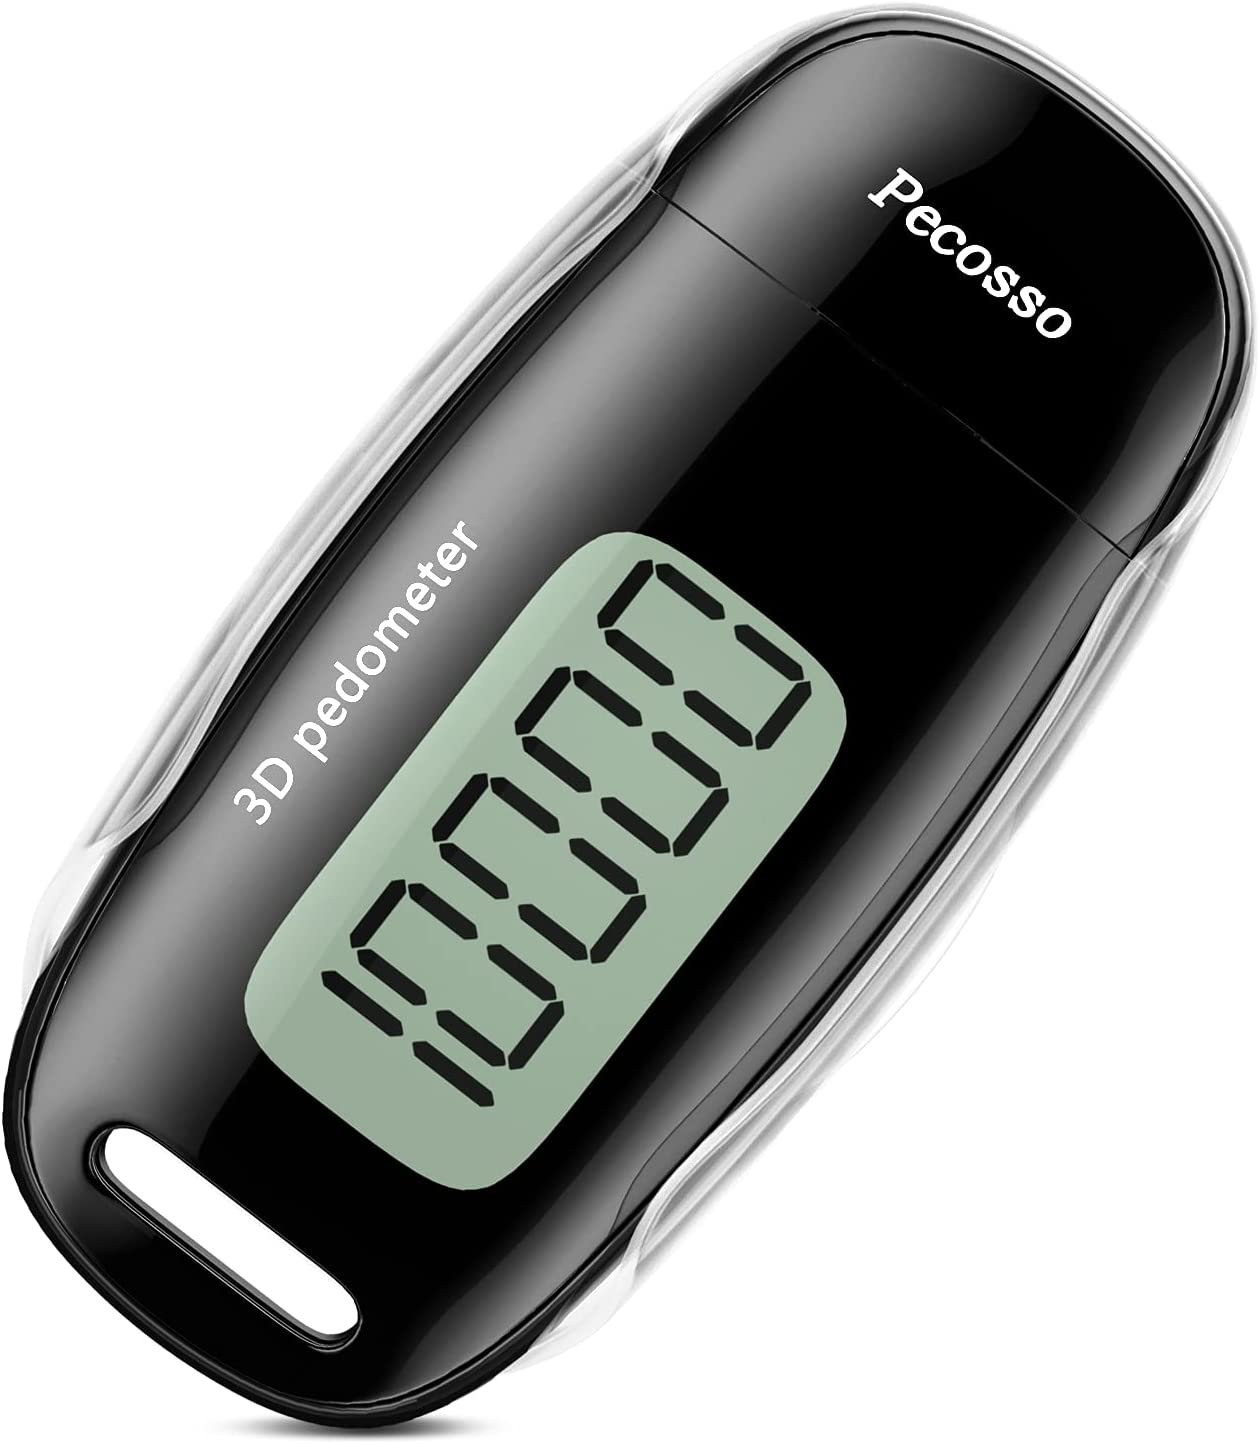 Pecosso USB Charge Step Counter Walking 3D Pedometer withLarge Luminous LCDScreen,ClipandLanyard for WholeFamily (Black) : Sports & Outdoors